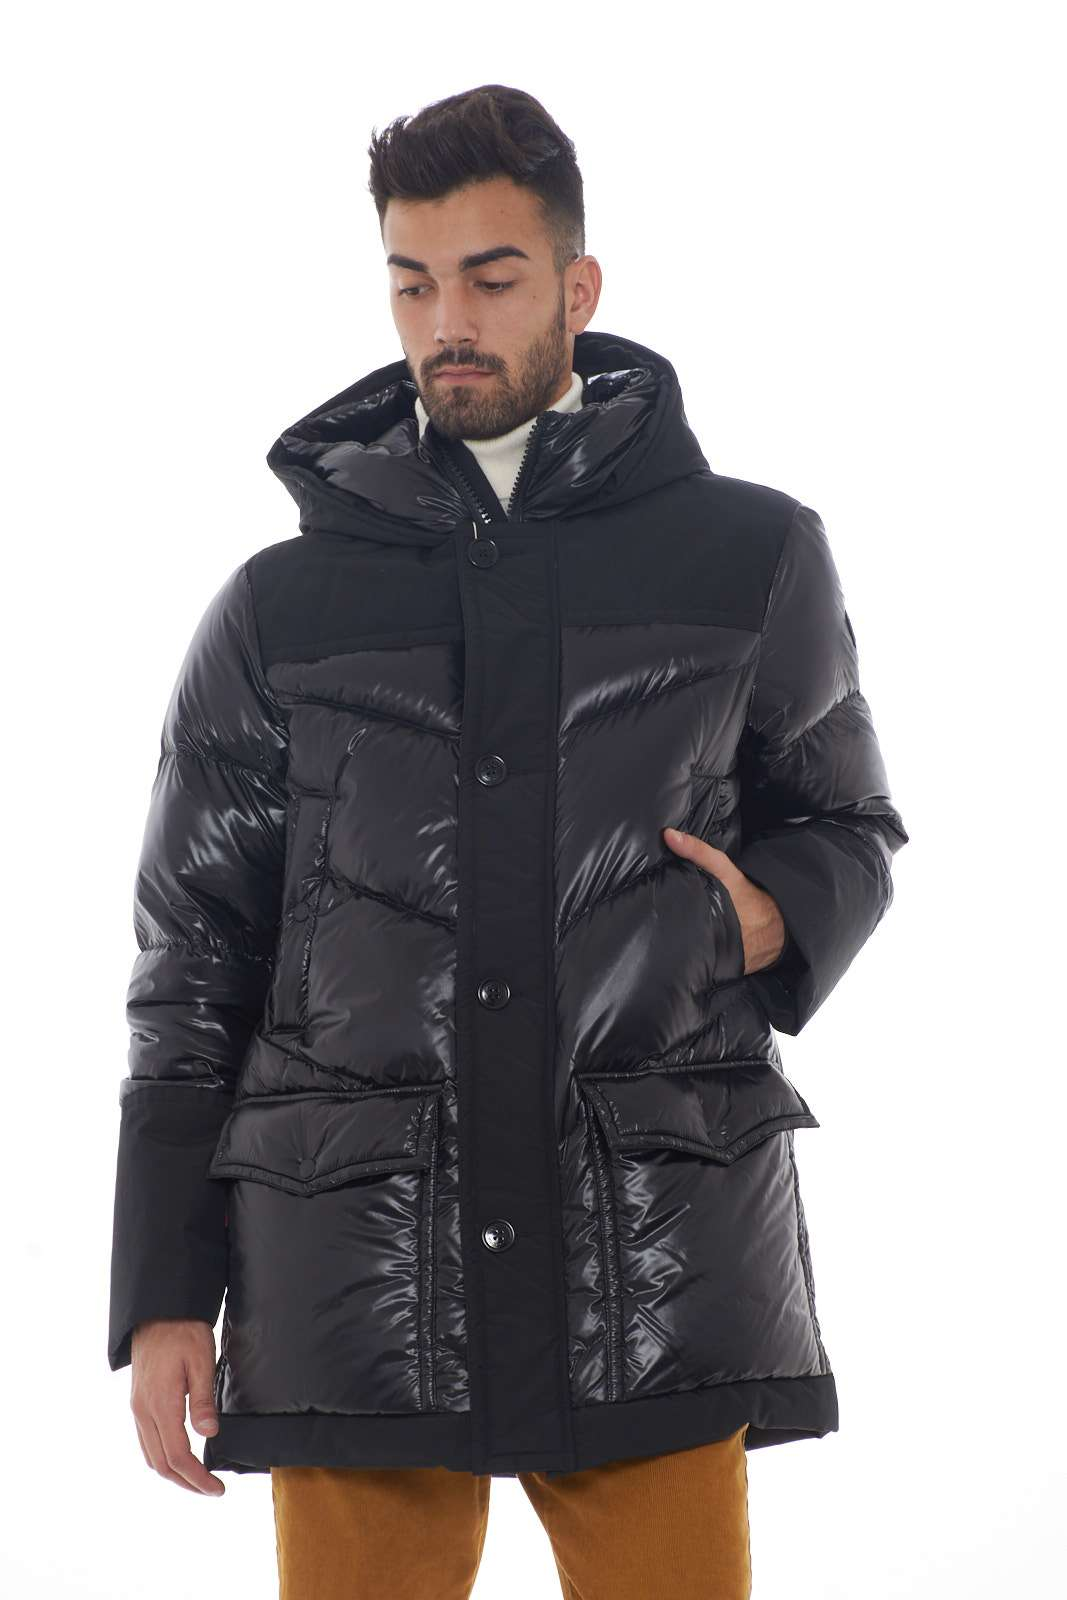 https://www.parmax.com/media/catalog/product/a/i/AI-outlet_parmax-giubbino-uomo-Woolrich-WOCPS2860-A.jpg